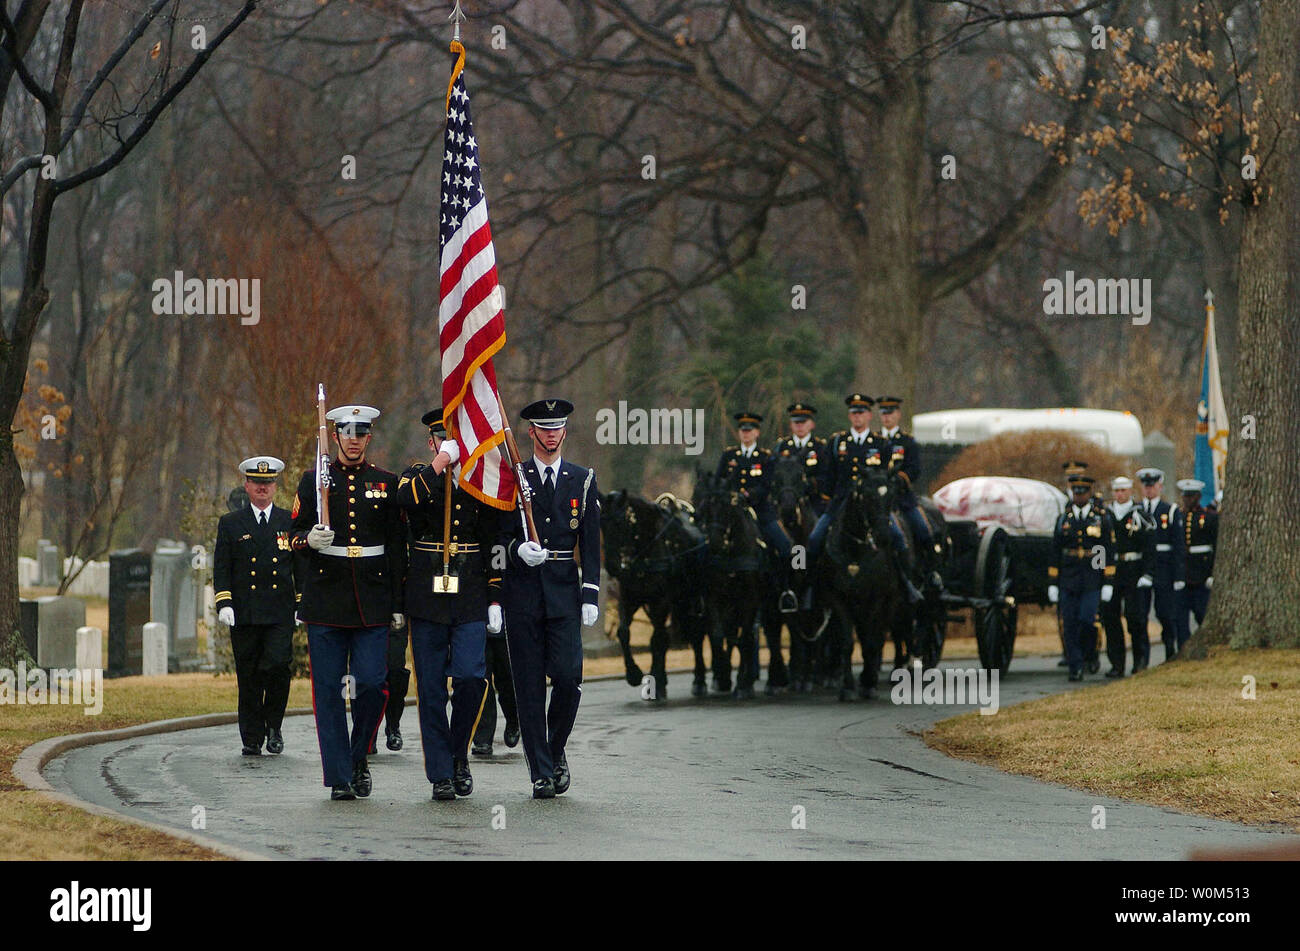 Members of the U.S. Army's 3rd Infantry 'Old Guard' caisson platoon, parade the black flag draped casket of Adm. Thomas H. Moorer, during a full military honors burial at Arlington National Cemetery on February 20, 2004. Adm. Moorer is a graduate of the Naval Academy class of1933 and went on to served as the Chief of Naval Operations from 1967-1970, whereupon he was appointed Chairman of the Joint Chiefs of Staff, a post he held until his retirement in 1974. A former naval aviator, Moorer earned many medals and honors during his career, including the Department of Defense Distinguished Service - Stock Image